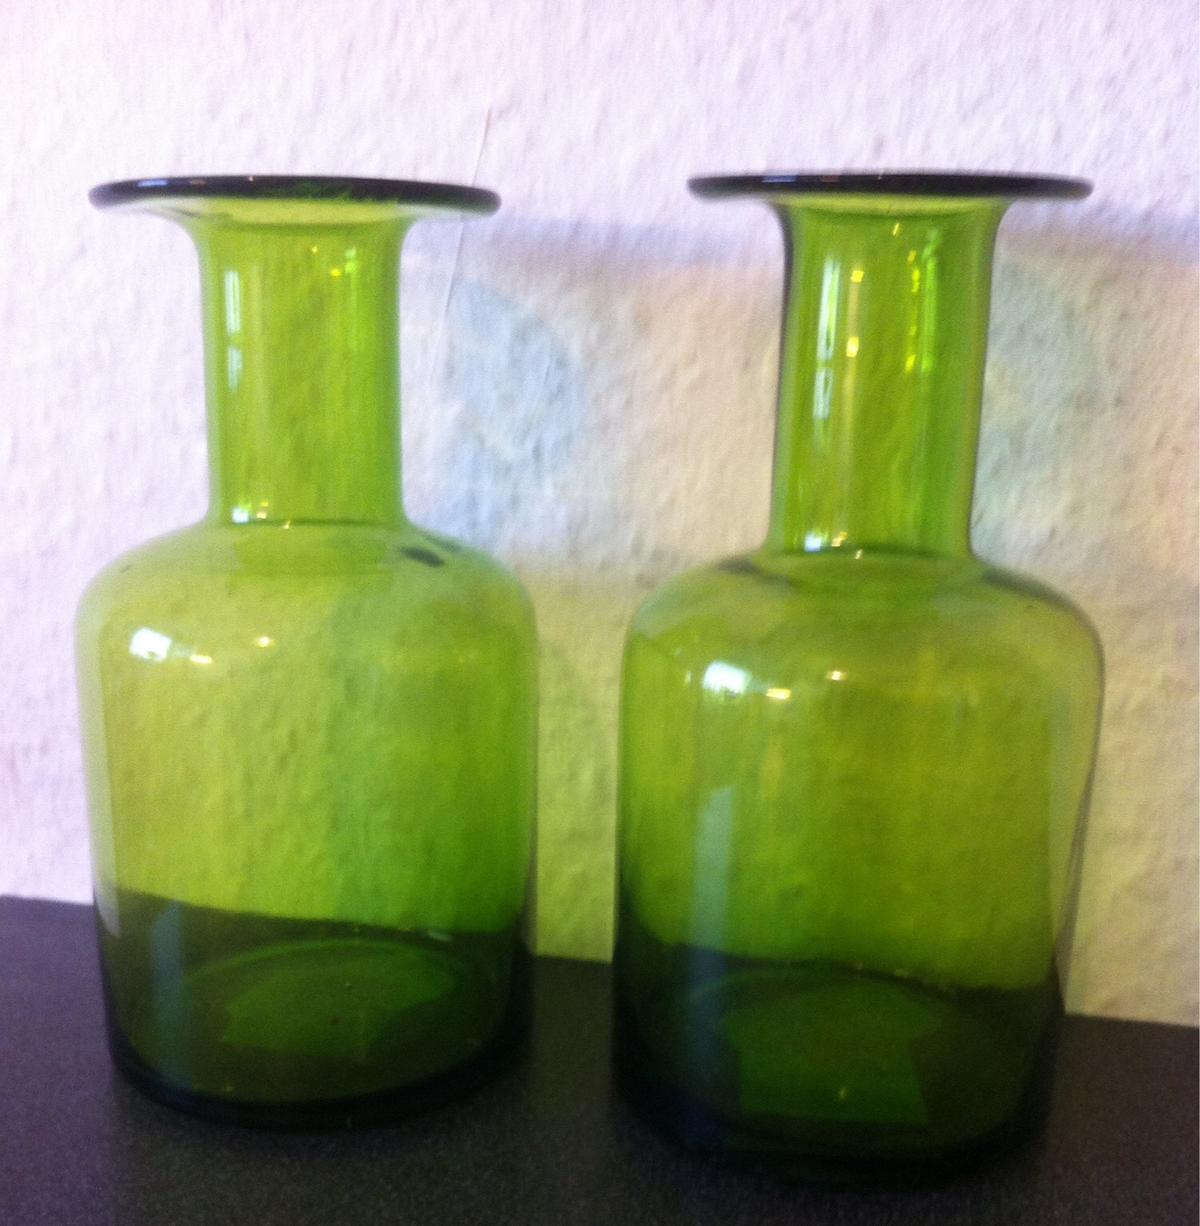 2 Glasvasen Vase Glas In Grün Neu In 82110 Germering For 8 00 For Sale Shpock